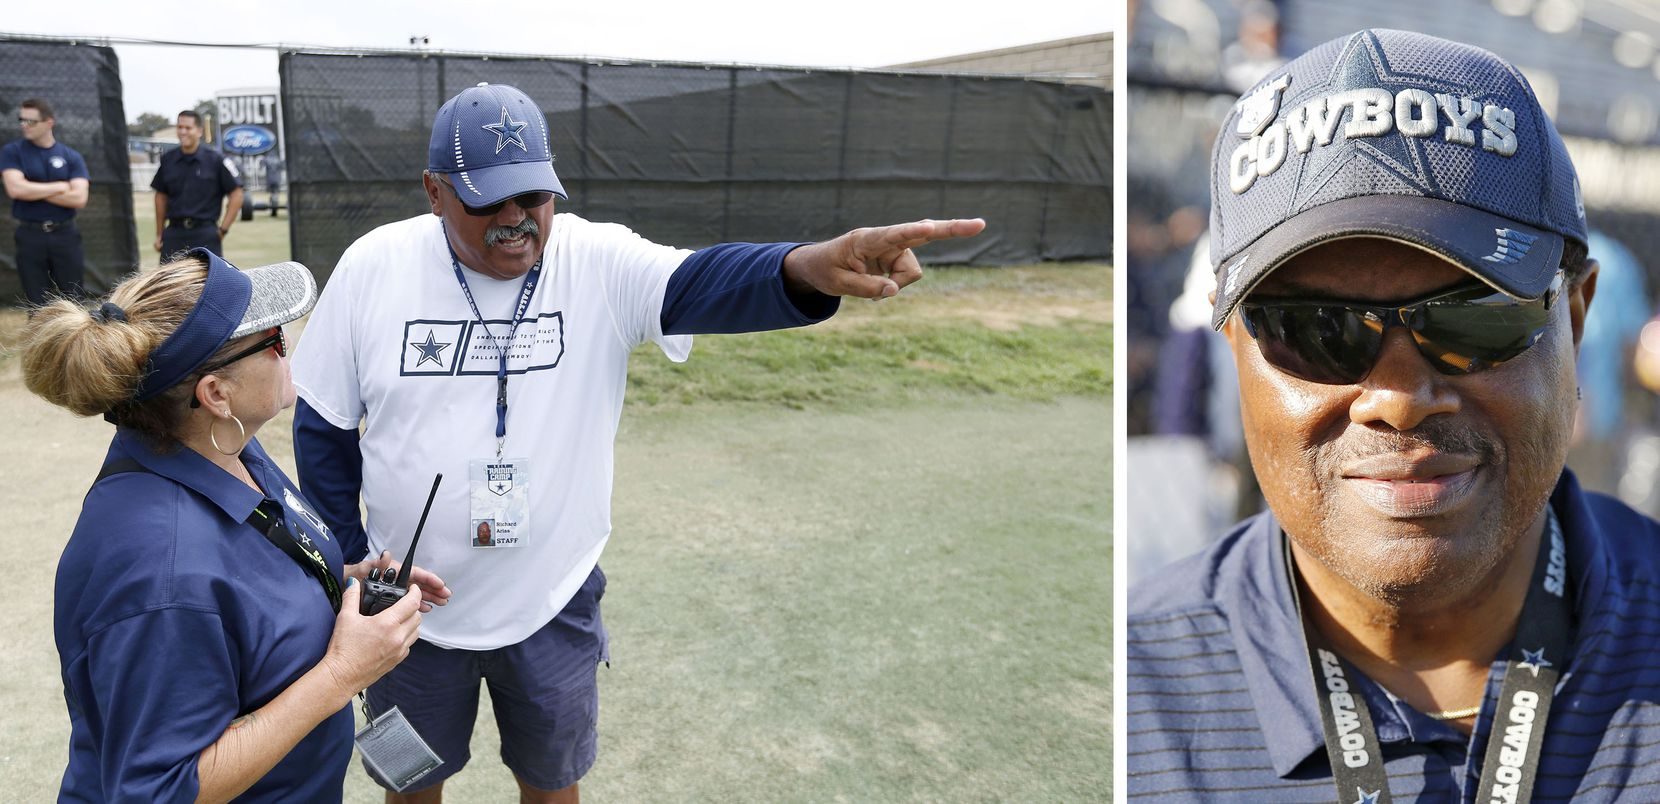 Richard Arias (left) coordinates the more than 200 volunteers, including Ken Turner (right) who helps make training camp possible in Oxnard.